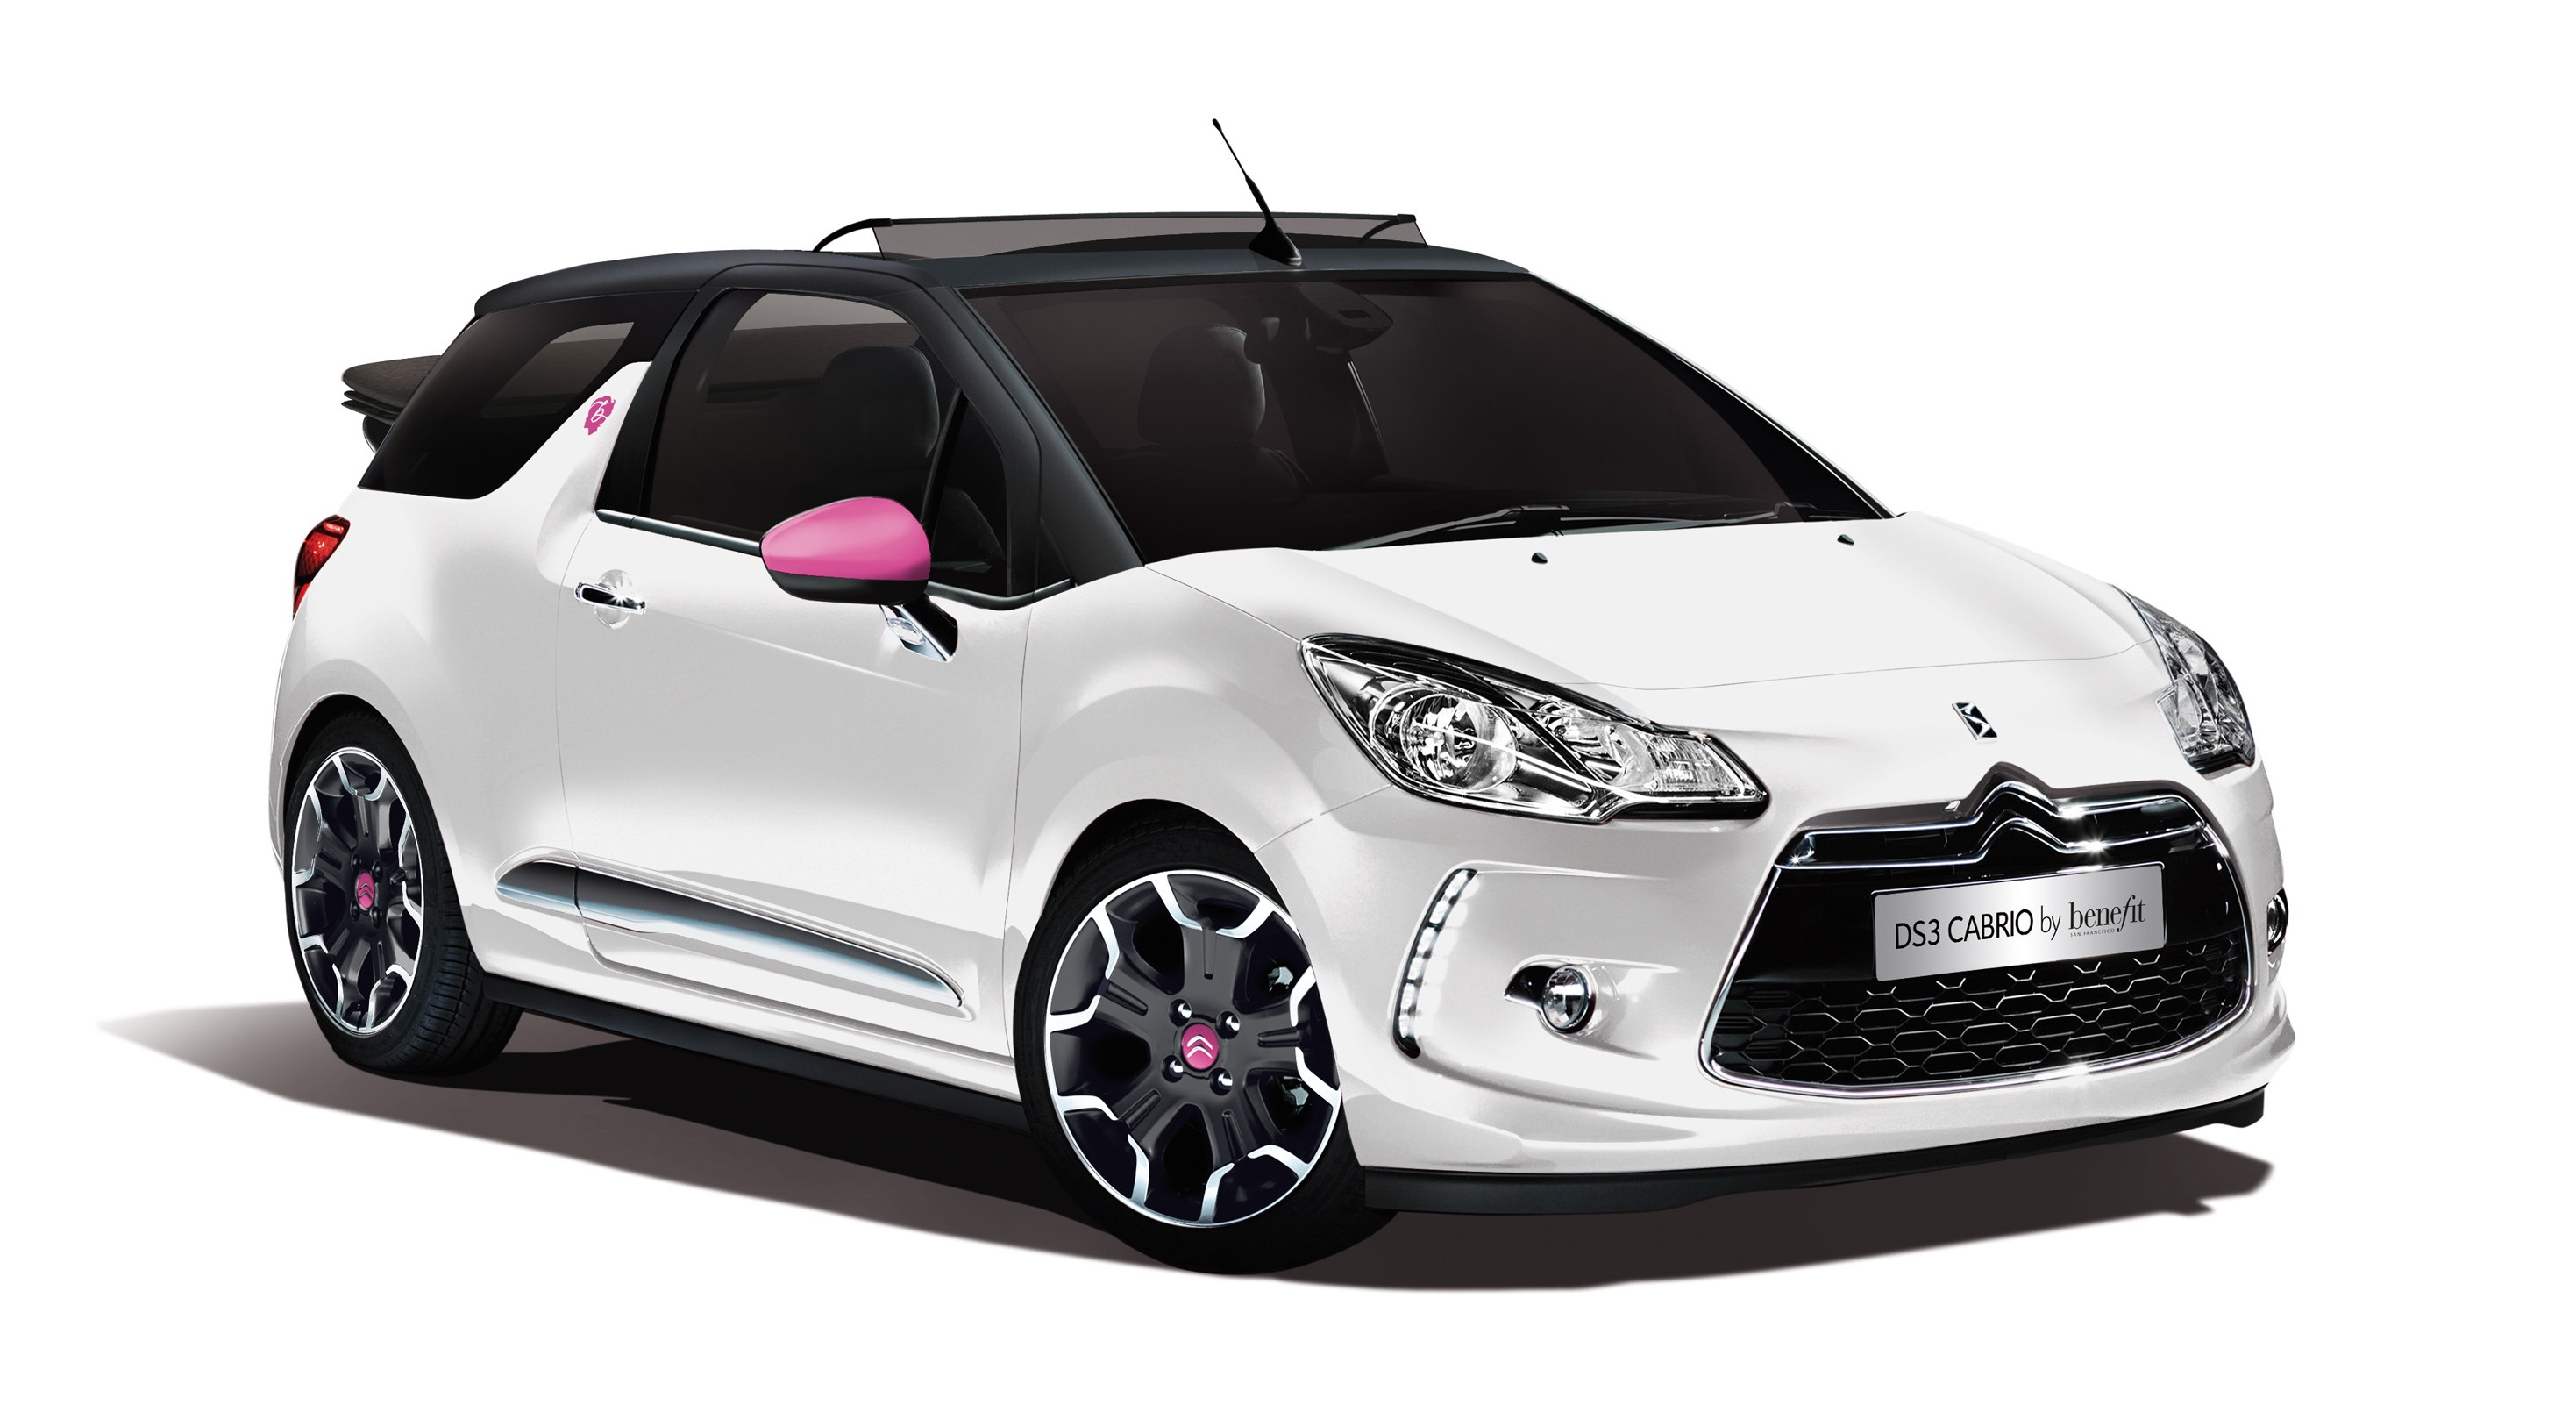 2014 citroen ds 3 cabrio dstyle by benefit review top speed. Black Bedroom Furniture Sets. Home Design Ideas